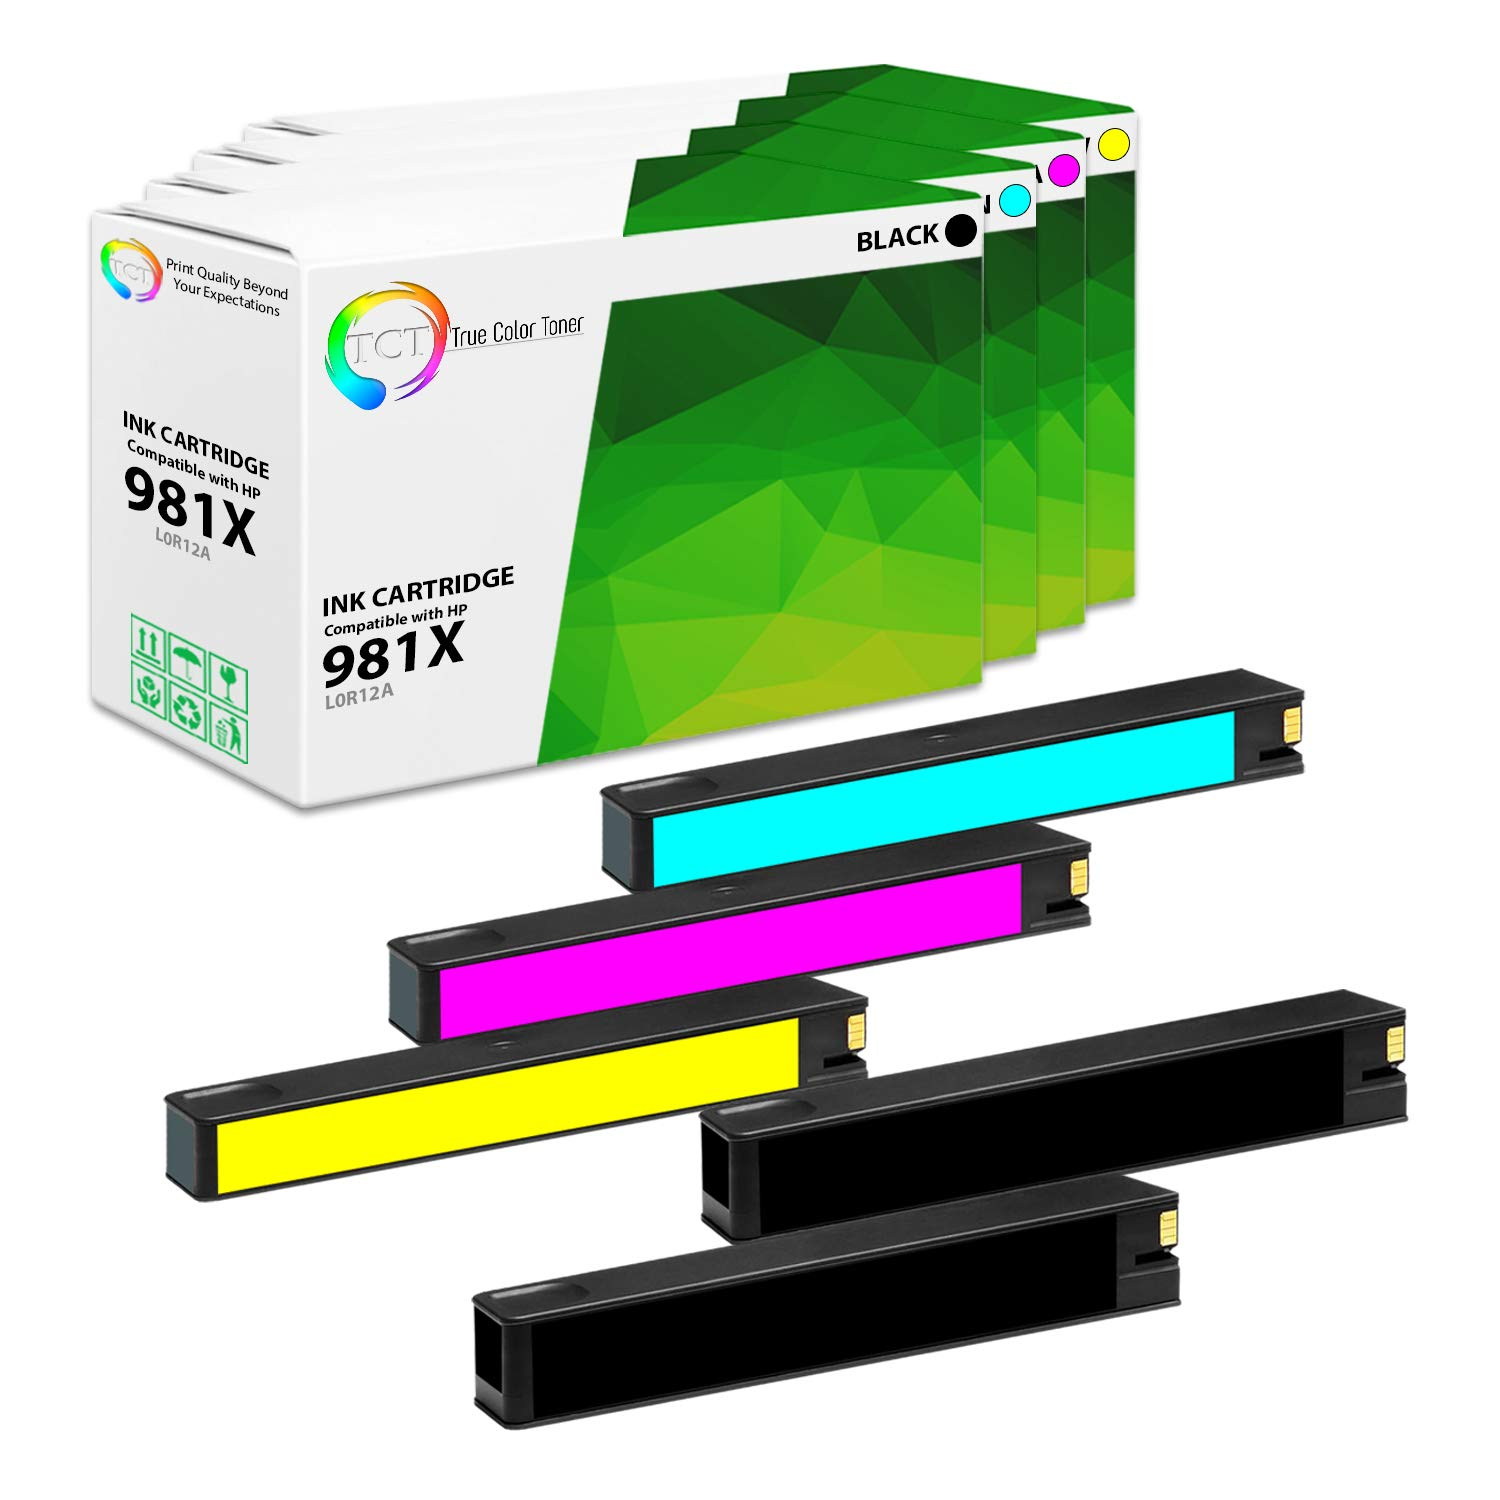 TCT Compatible Ink Cartridge Replacement for HP 981X High Yield Works with HP PageWide Enterprise Color 556dn, MFP 586z Printers (Black L0R12A, Cyan L0R09A, Magenta L0R10A, Yellow L0R11A) - 5 Pack